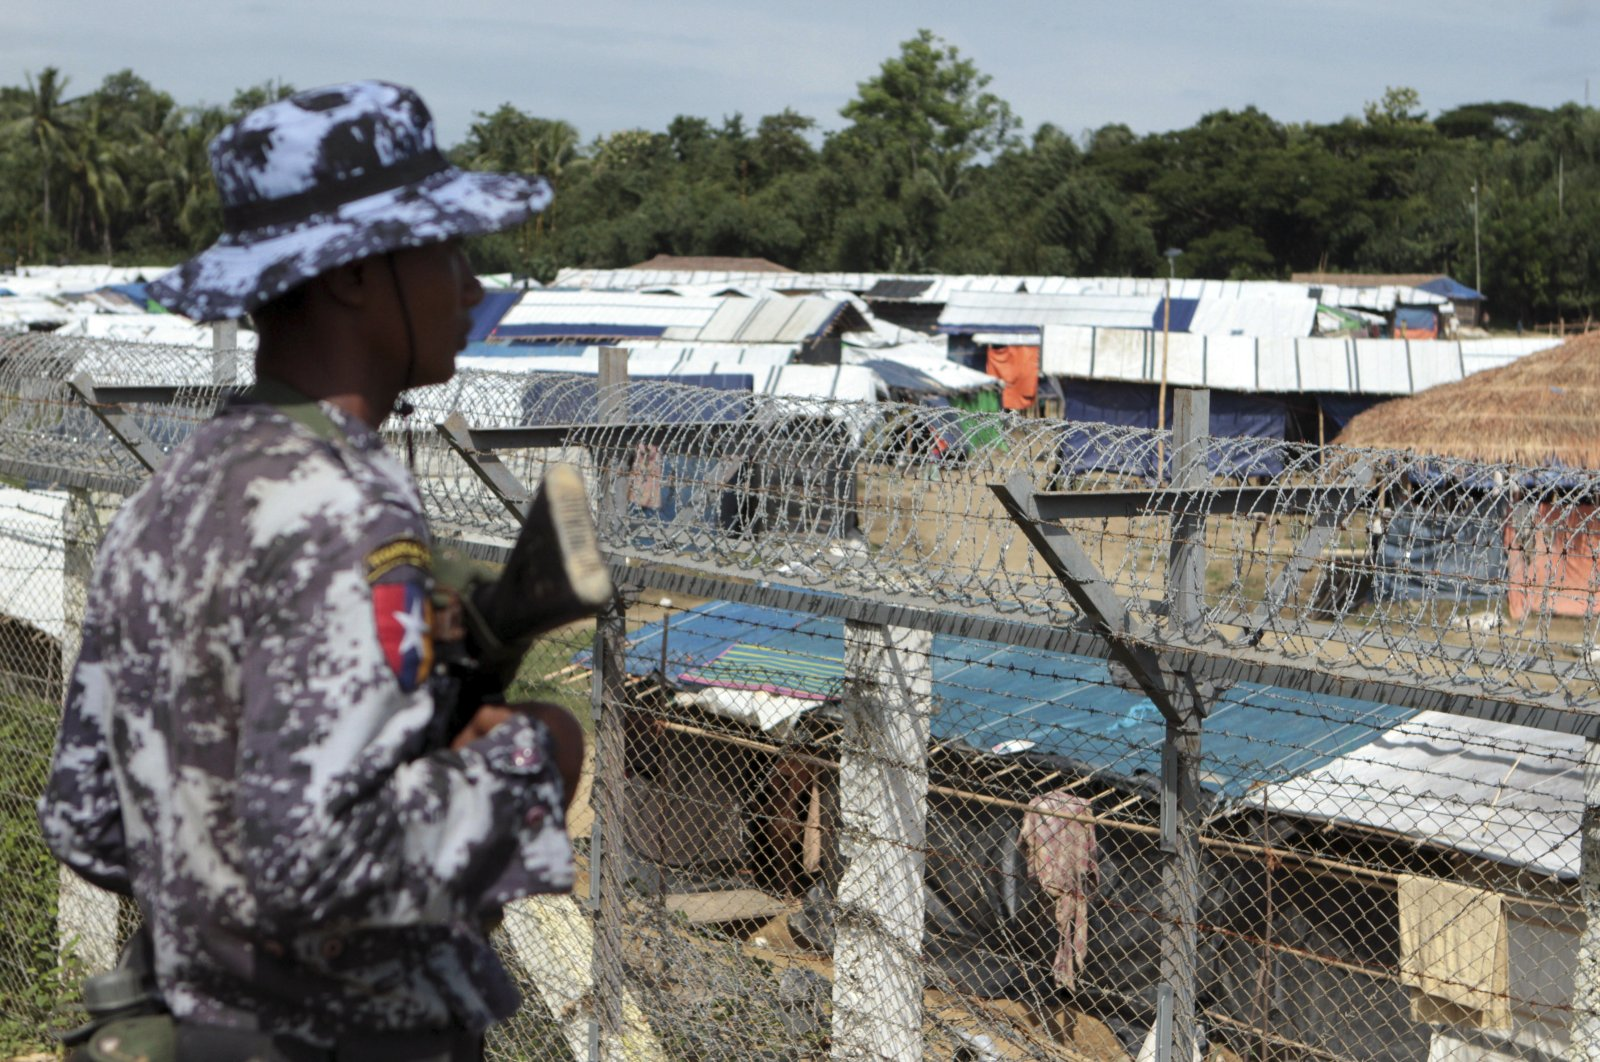 A Myanmar border guard stands to provide security near a fence at a no-man's land between Myanmar and Bangladesh, near Taungpyolatyar village, Maung Daw, northern Rakhine State, Myanmar, June 29, 2018. (AP Photo)